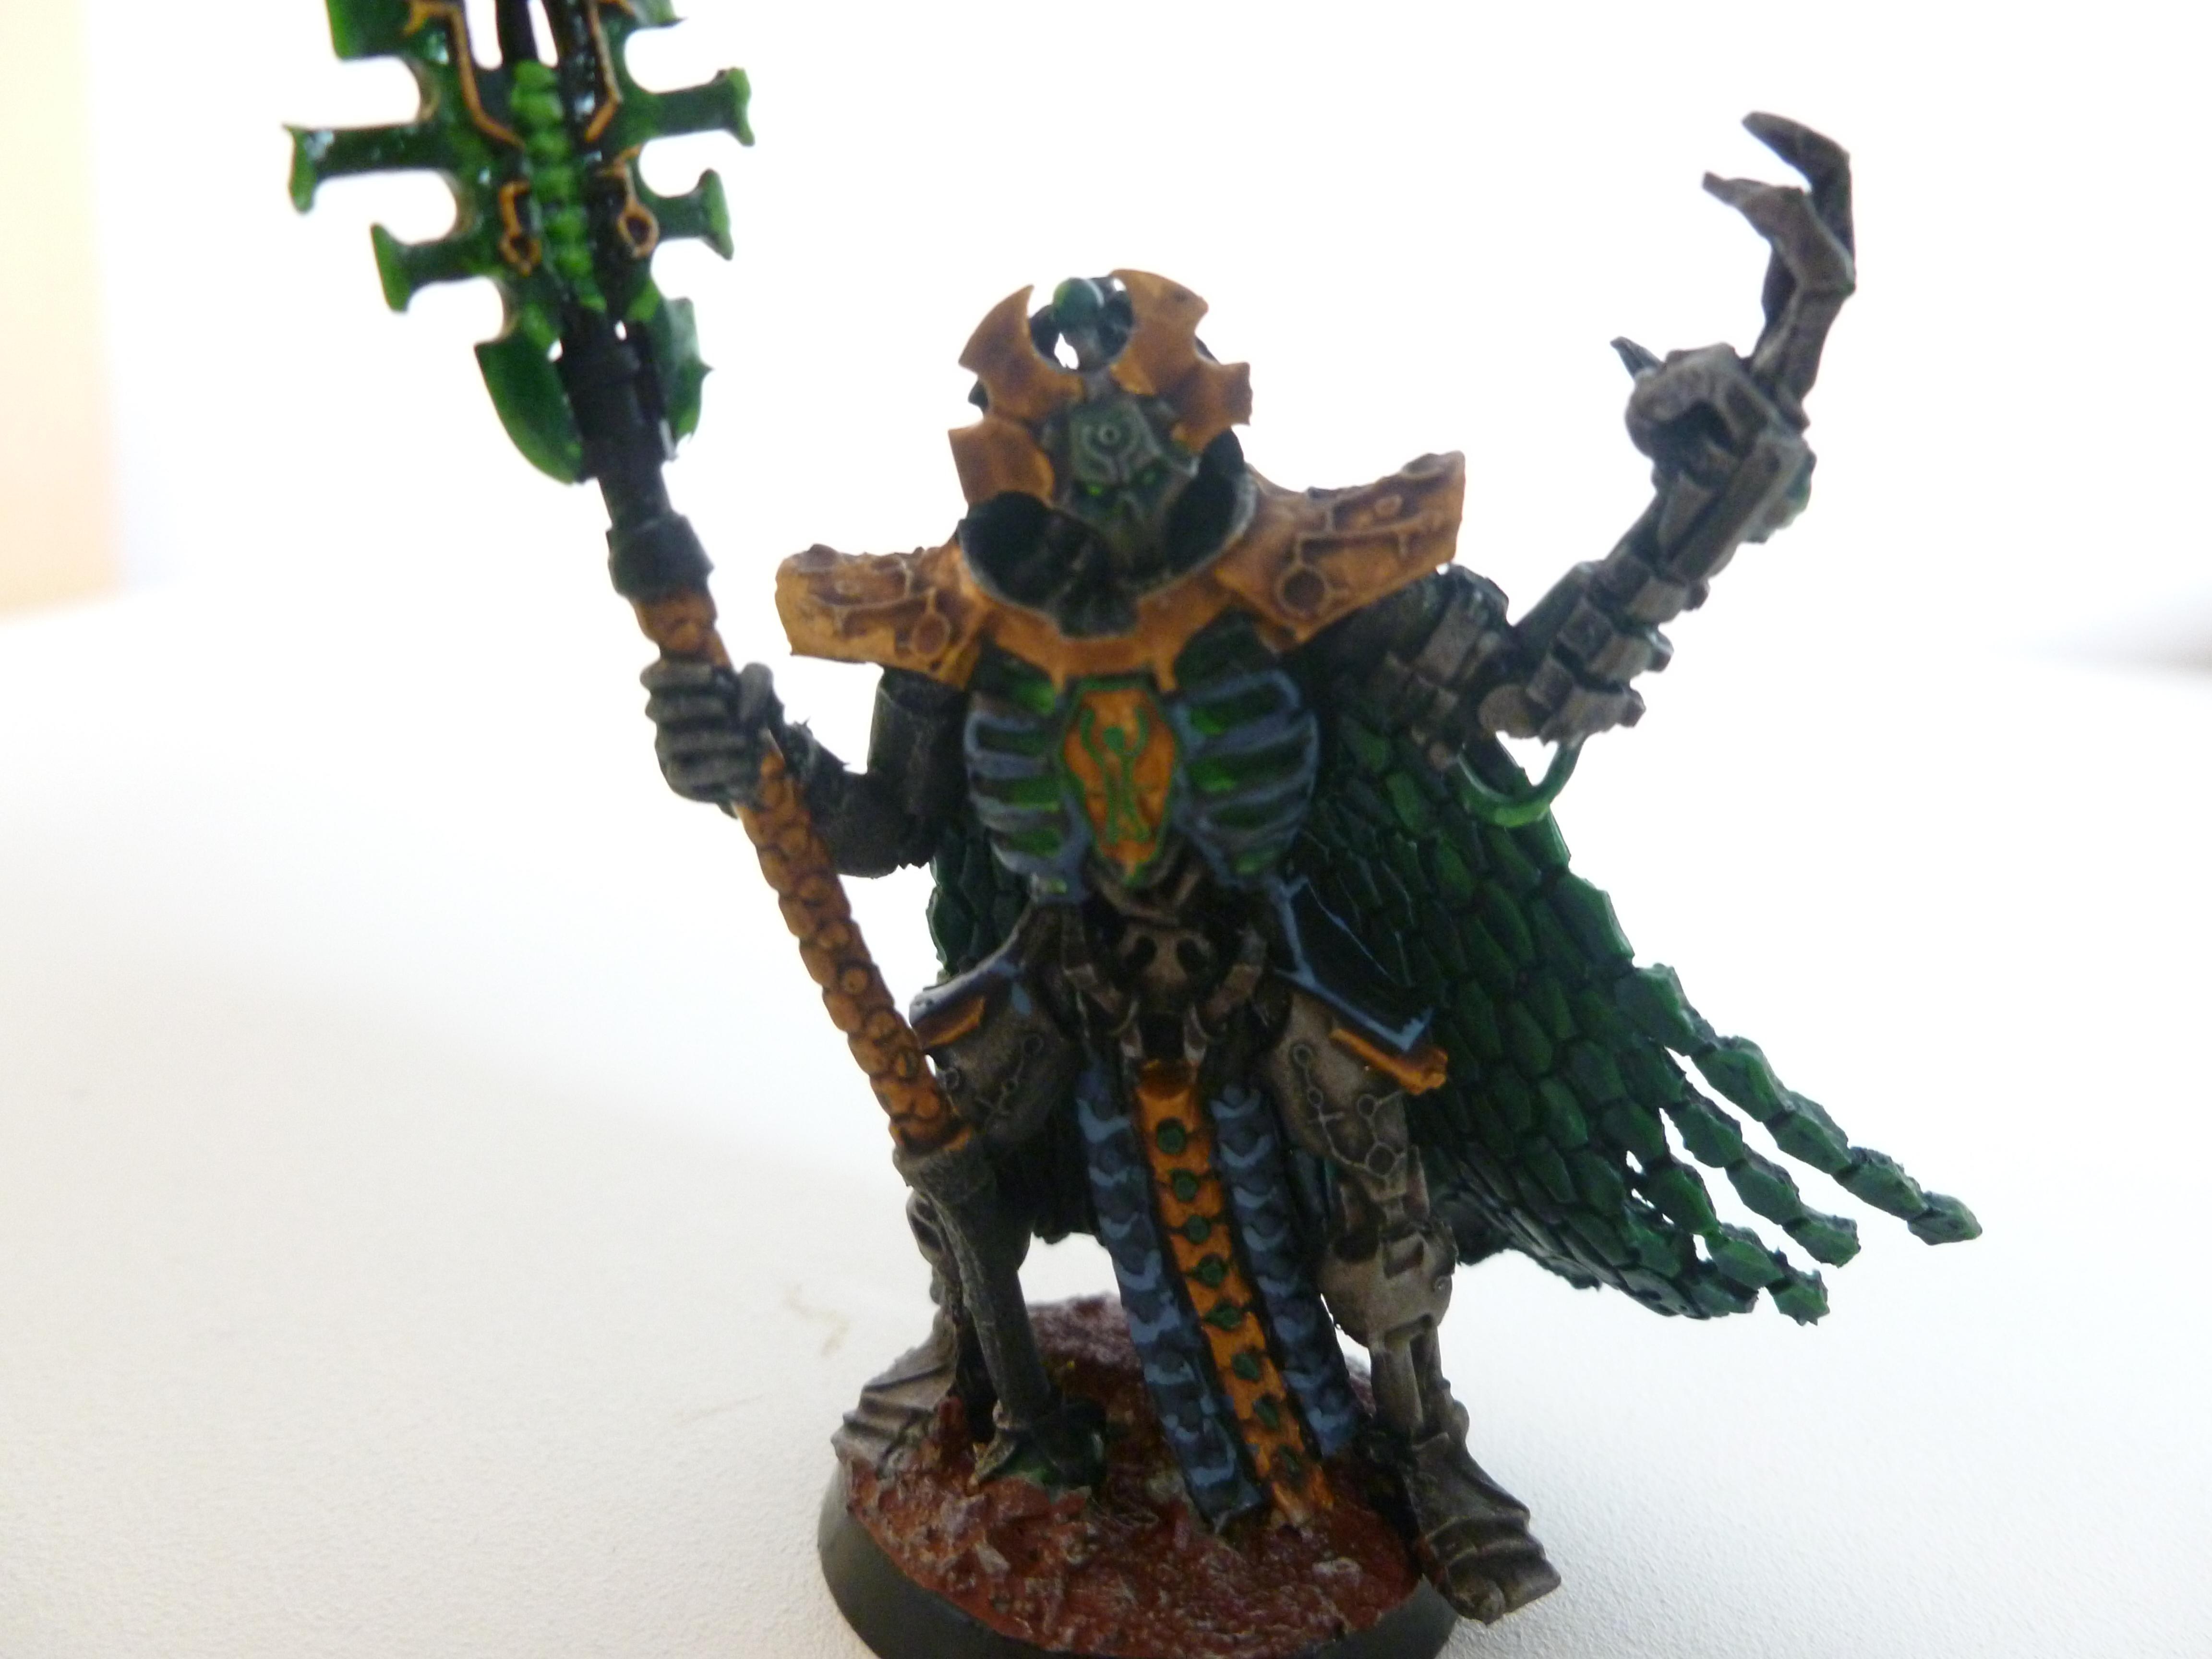 6th Edition, Artist, Black, Blue, Codex, Dawn, Drawing, Drawings, Finecast, Gloss Varnish, Gold, Green, Grey, Immotek The Stormlord, Light, Necrons, Painting, Paints, Plastic, Red, Rules, Sculpture, Speed, Staff Of Destroyer, Tales, Warhammer 40,000, Warhammer Fantasy, Warhammer40'000, World